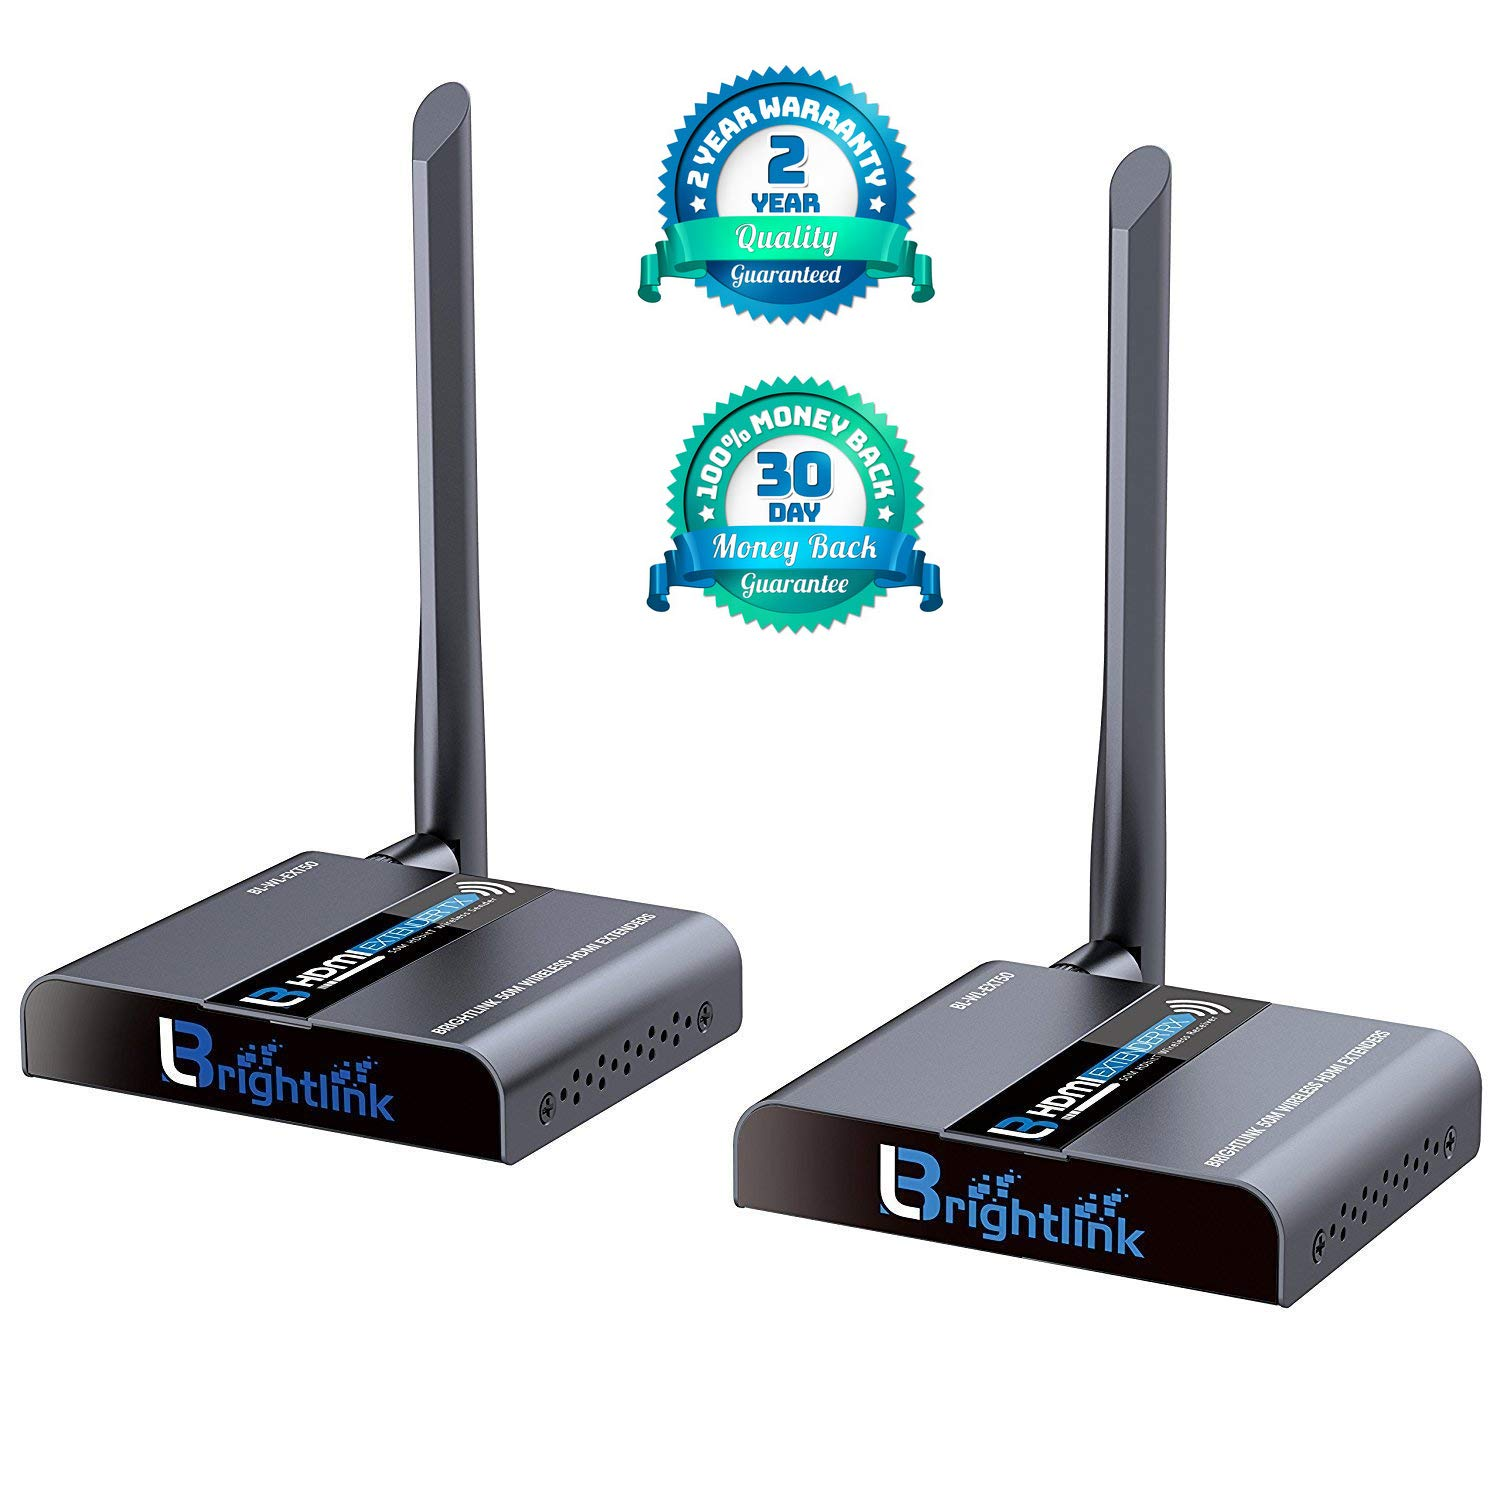 Brightlink New 50 M./ 164 Ft. HDMI Wireless Extender with Full HD 1080P @60Hz, Wide Band IR Passback & 5GHz Low Interference Frequency Range (Model # BL-WL-EXT 50) by Brightlink AV